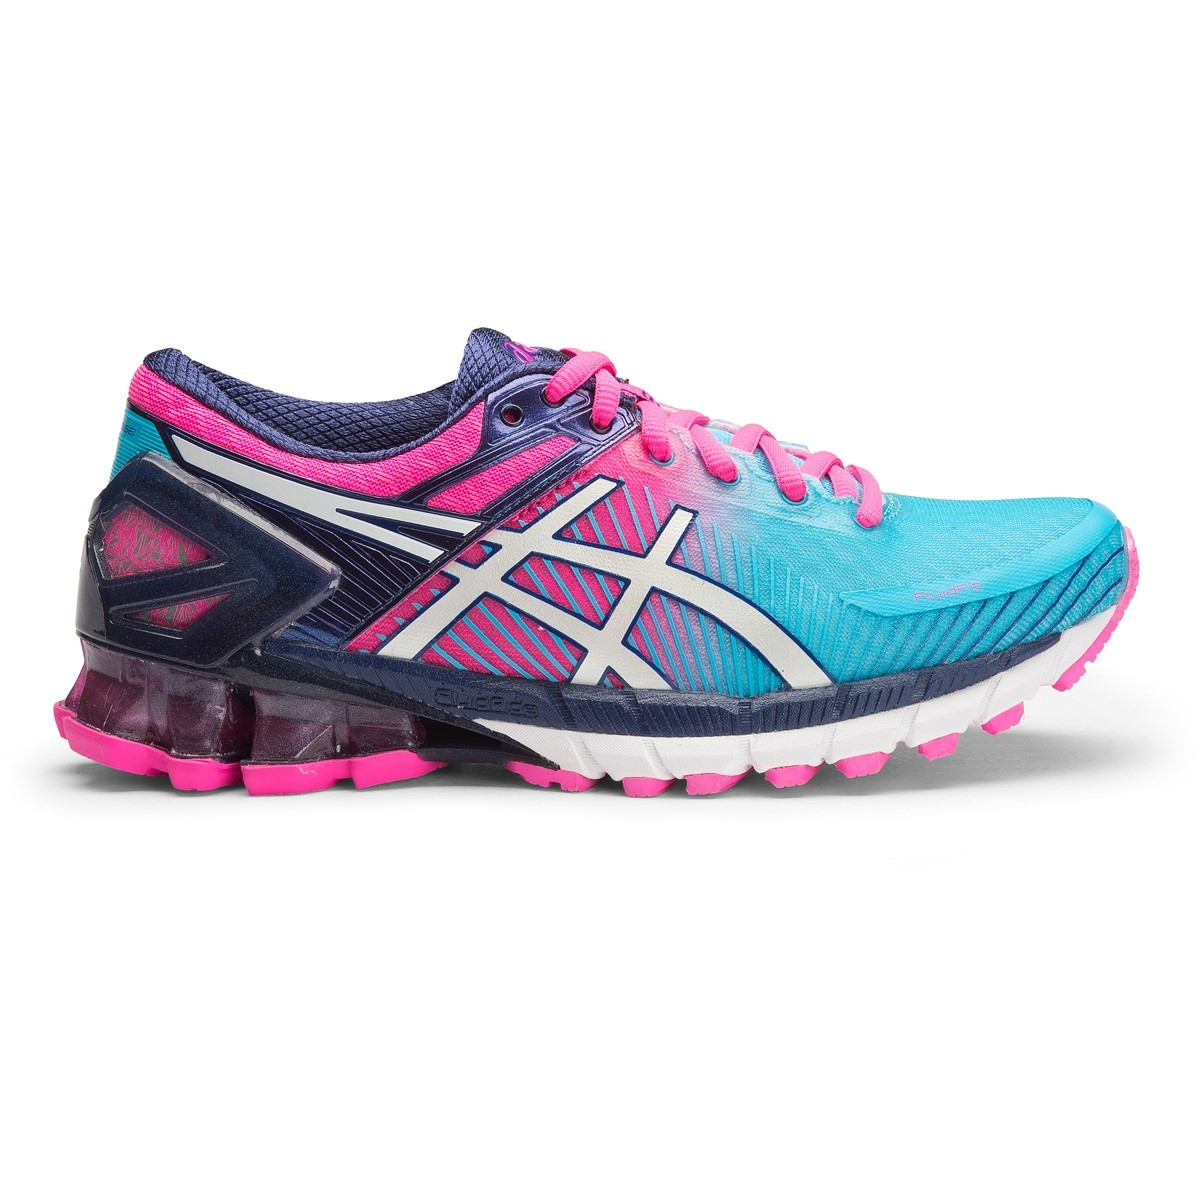 asics kinsei 6 womens running shoes aquarium white hot. Black Bedroom Furniture Sets. Home Design Ideas